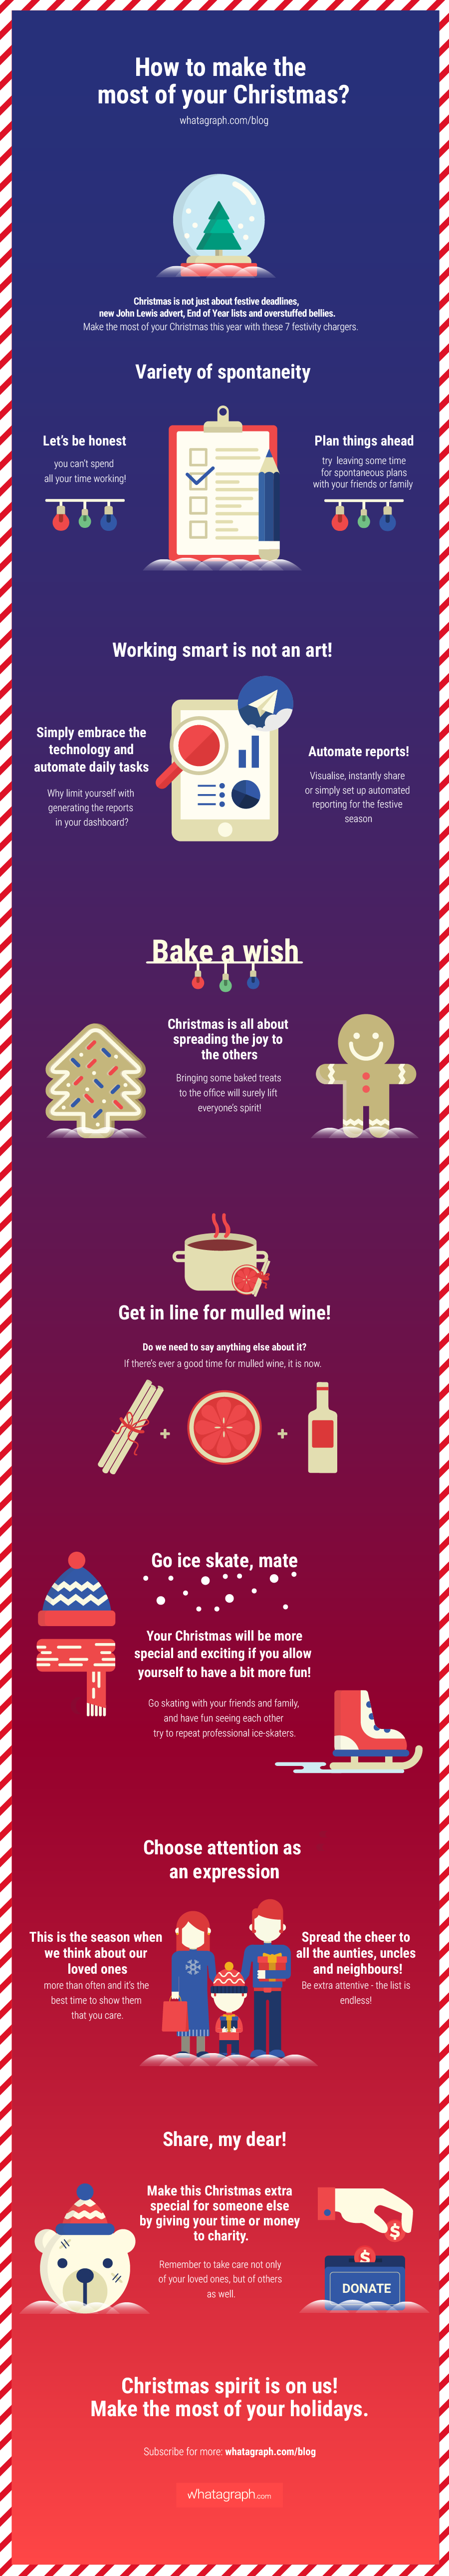 Make the most of your Christmas [Infographic}